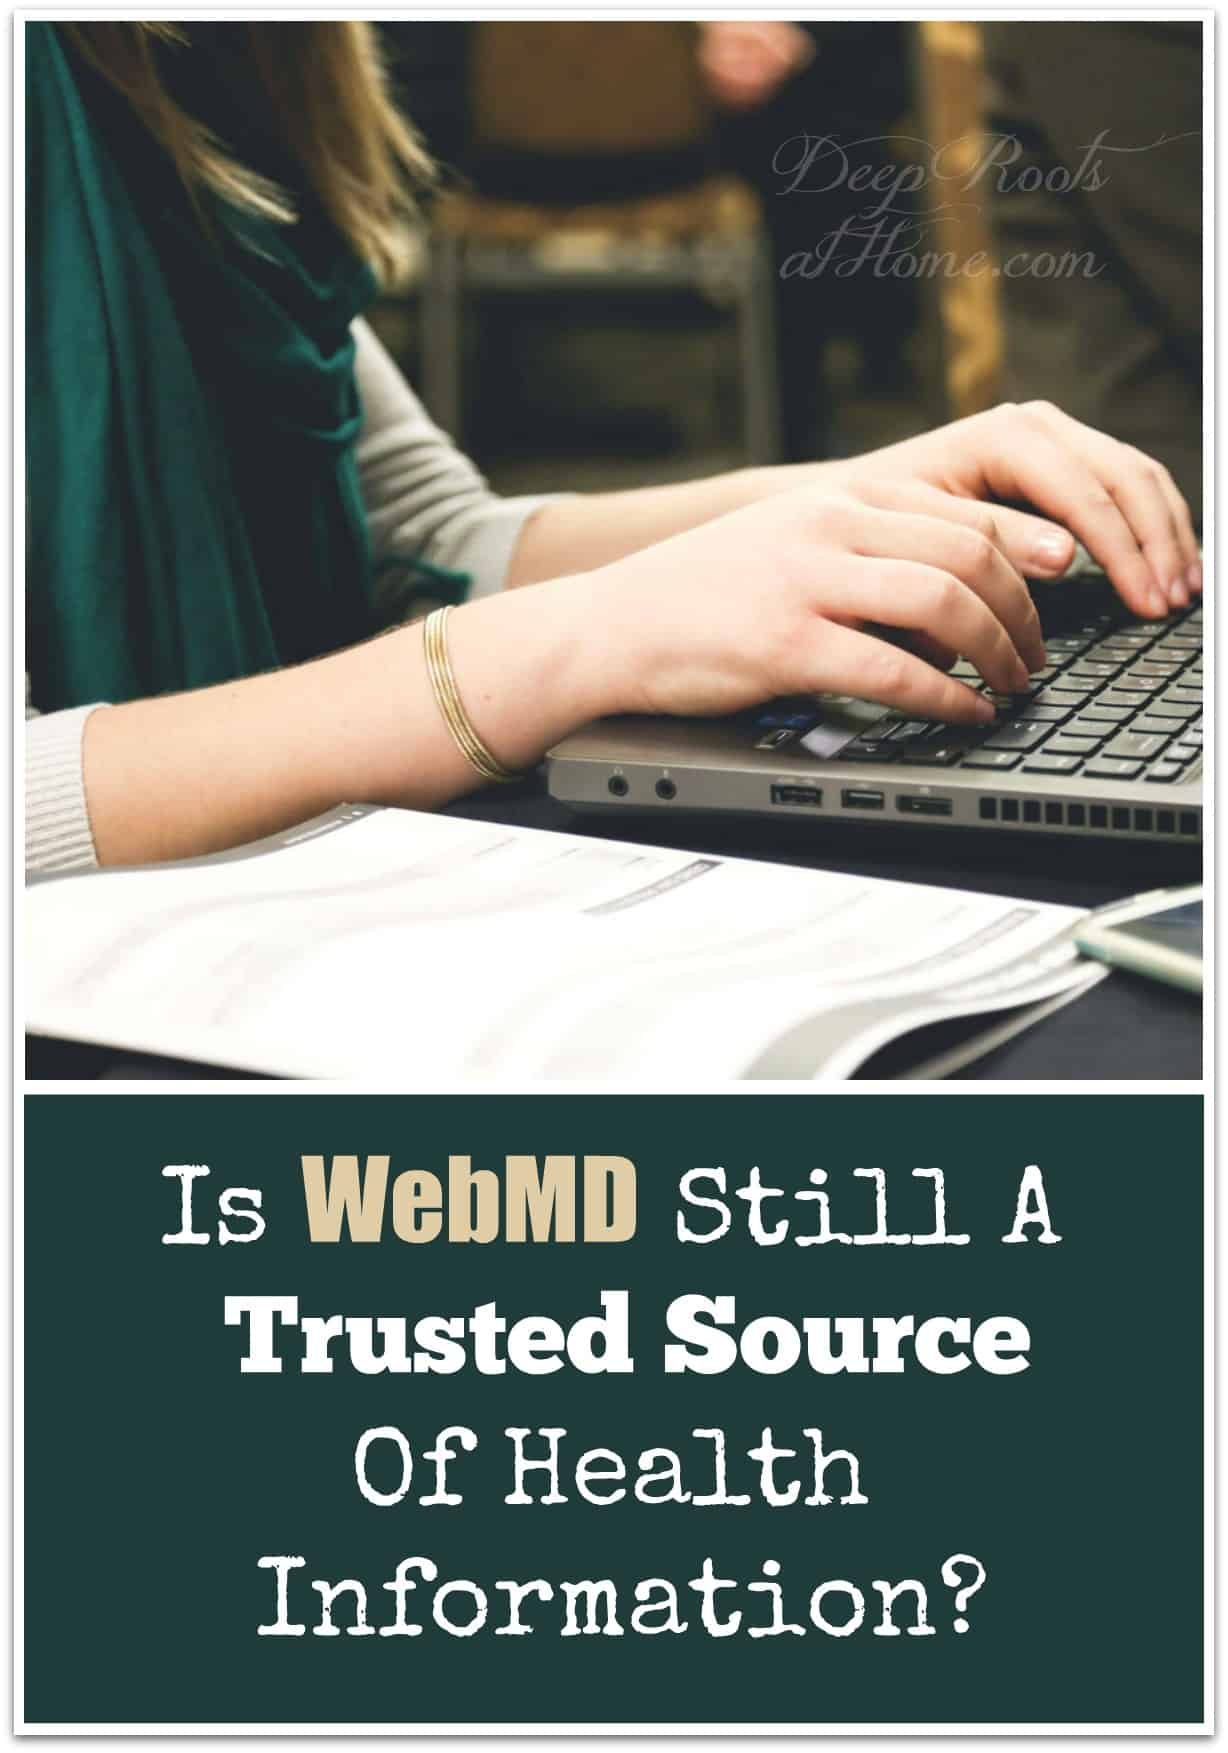 Is WebMD Still A Trusted Source Of Health Information? A woman sitting at a computer typing as she researches health information.